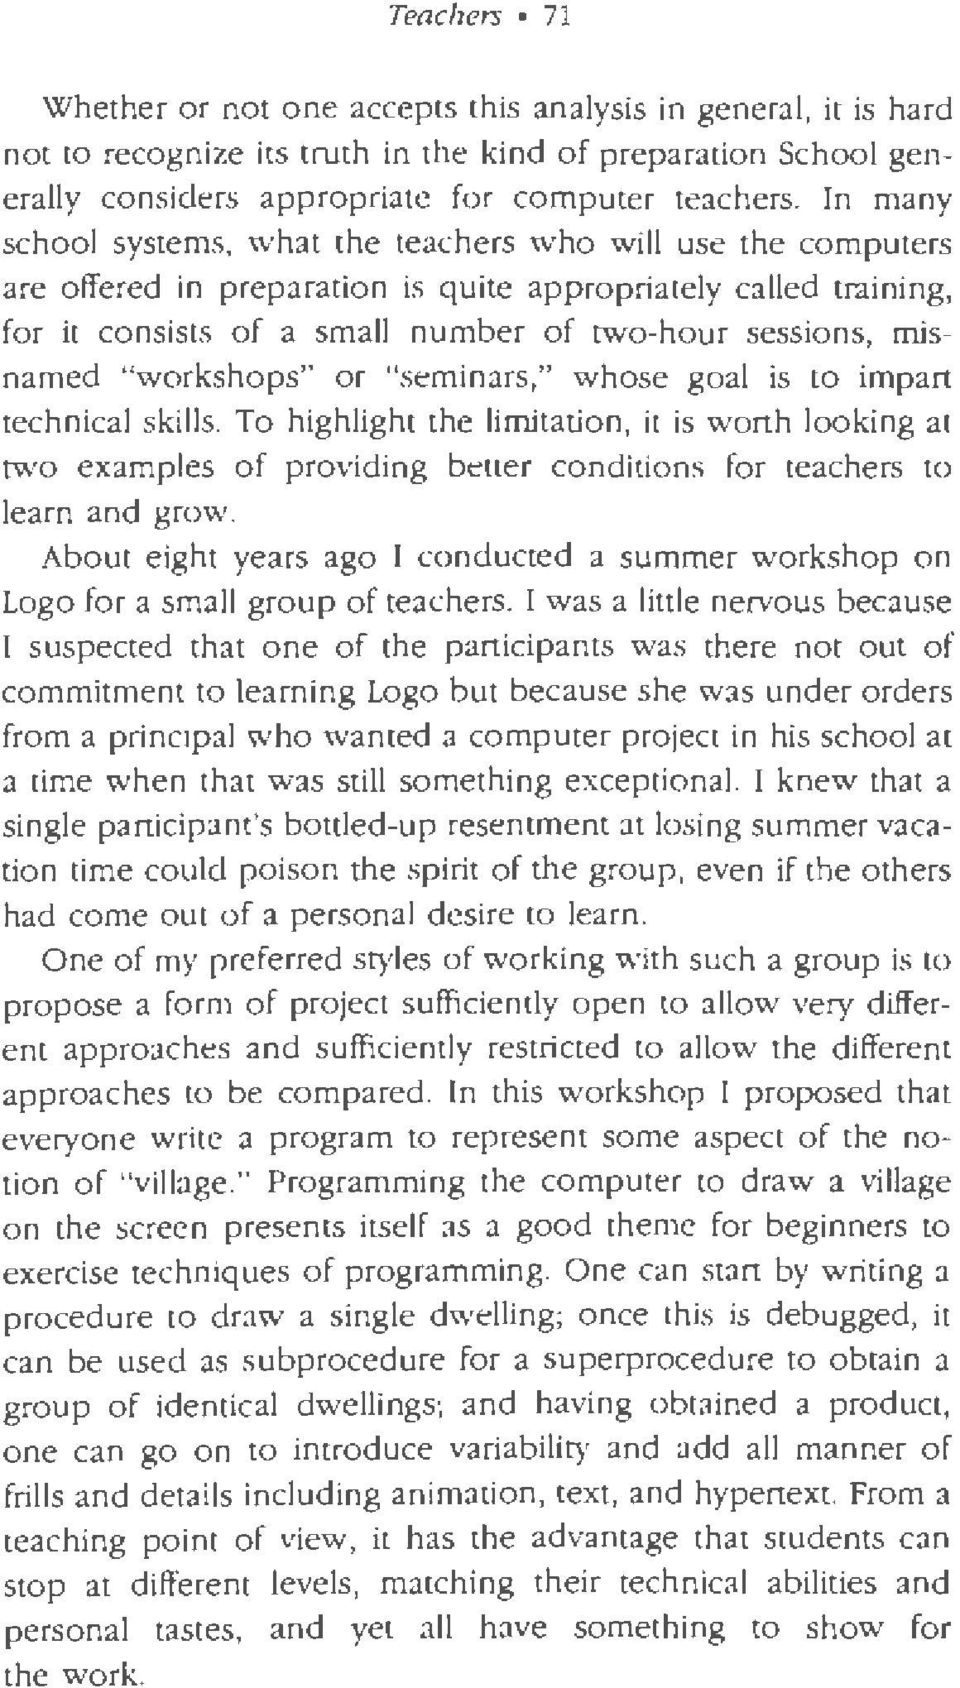 "misnamed ""workshops"" or ""seminars,"" whose goal is to impart technical skills."